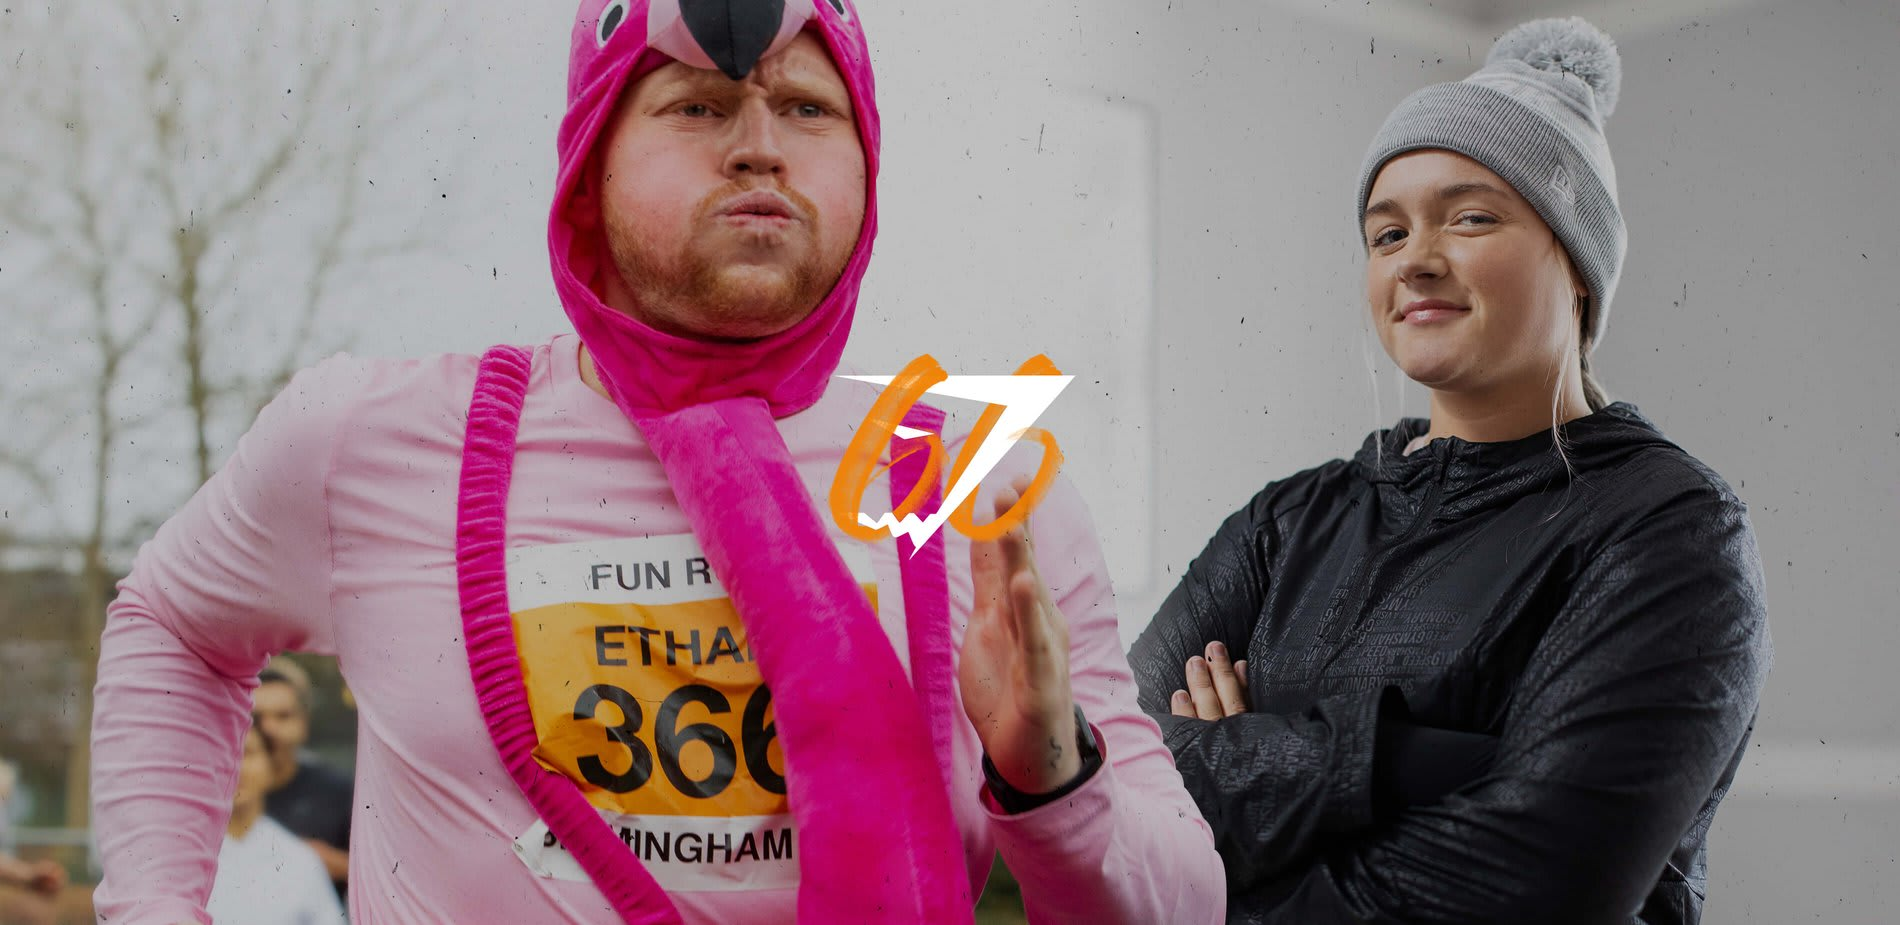 Man running a marathon in a flamingo outfit looking tired. Women with arms folded looking happy with herself with the Gymshark66 logo in the centre of image.